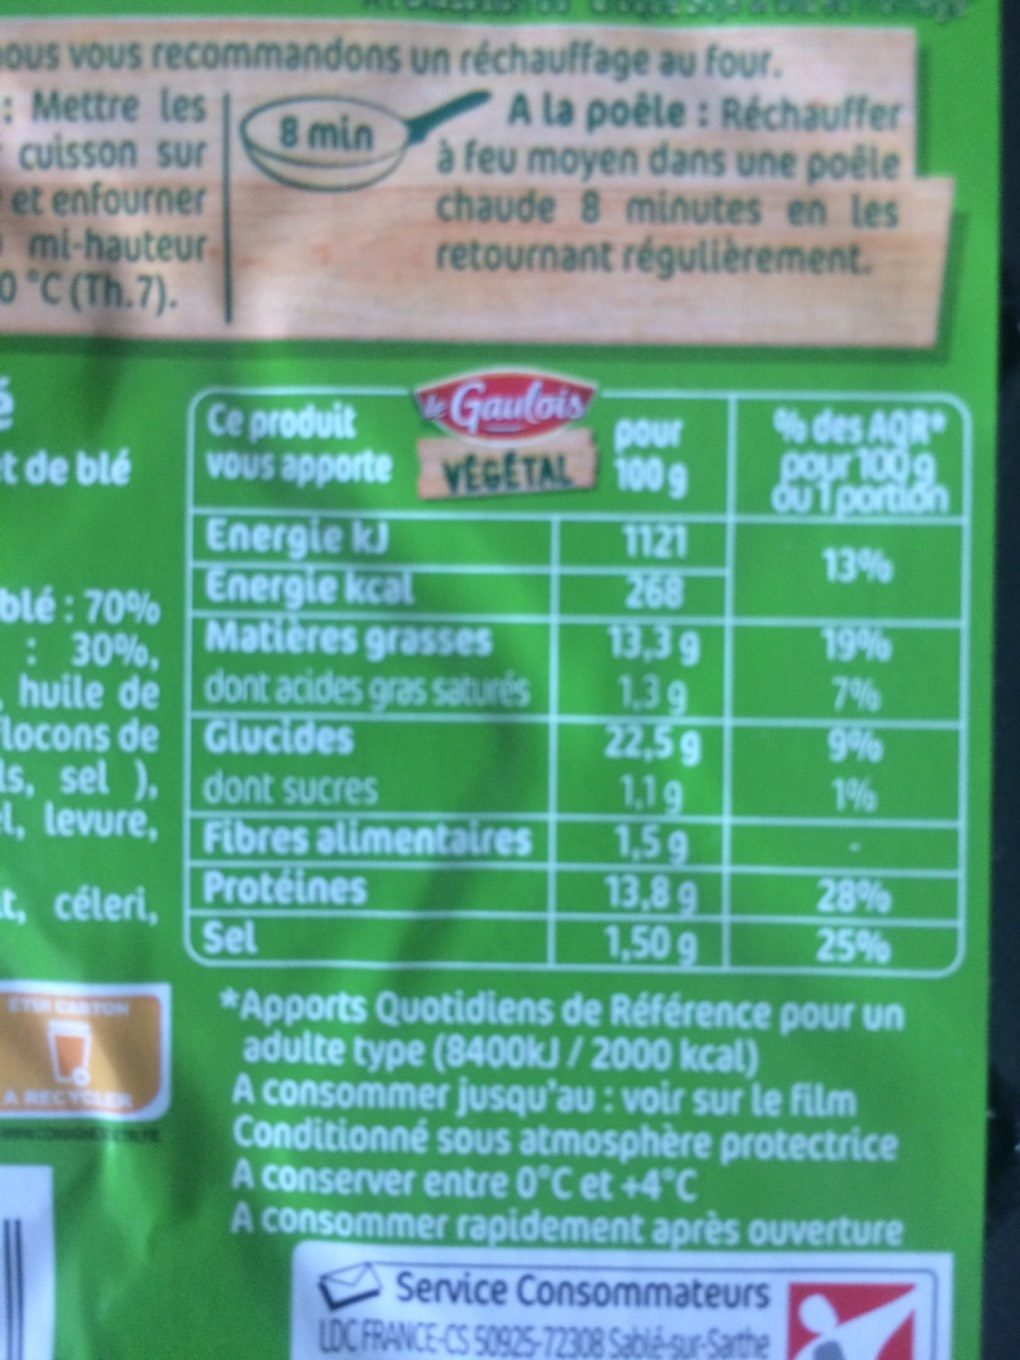 Nuggets Soja & Blé - Nutrition facts - fr